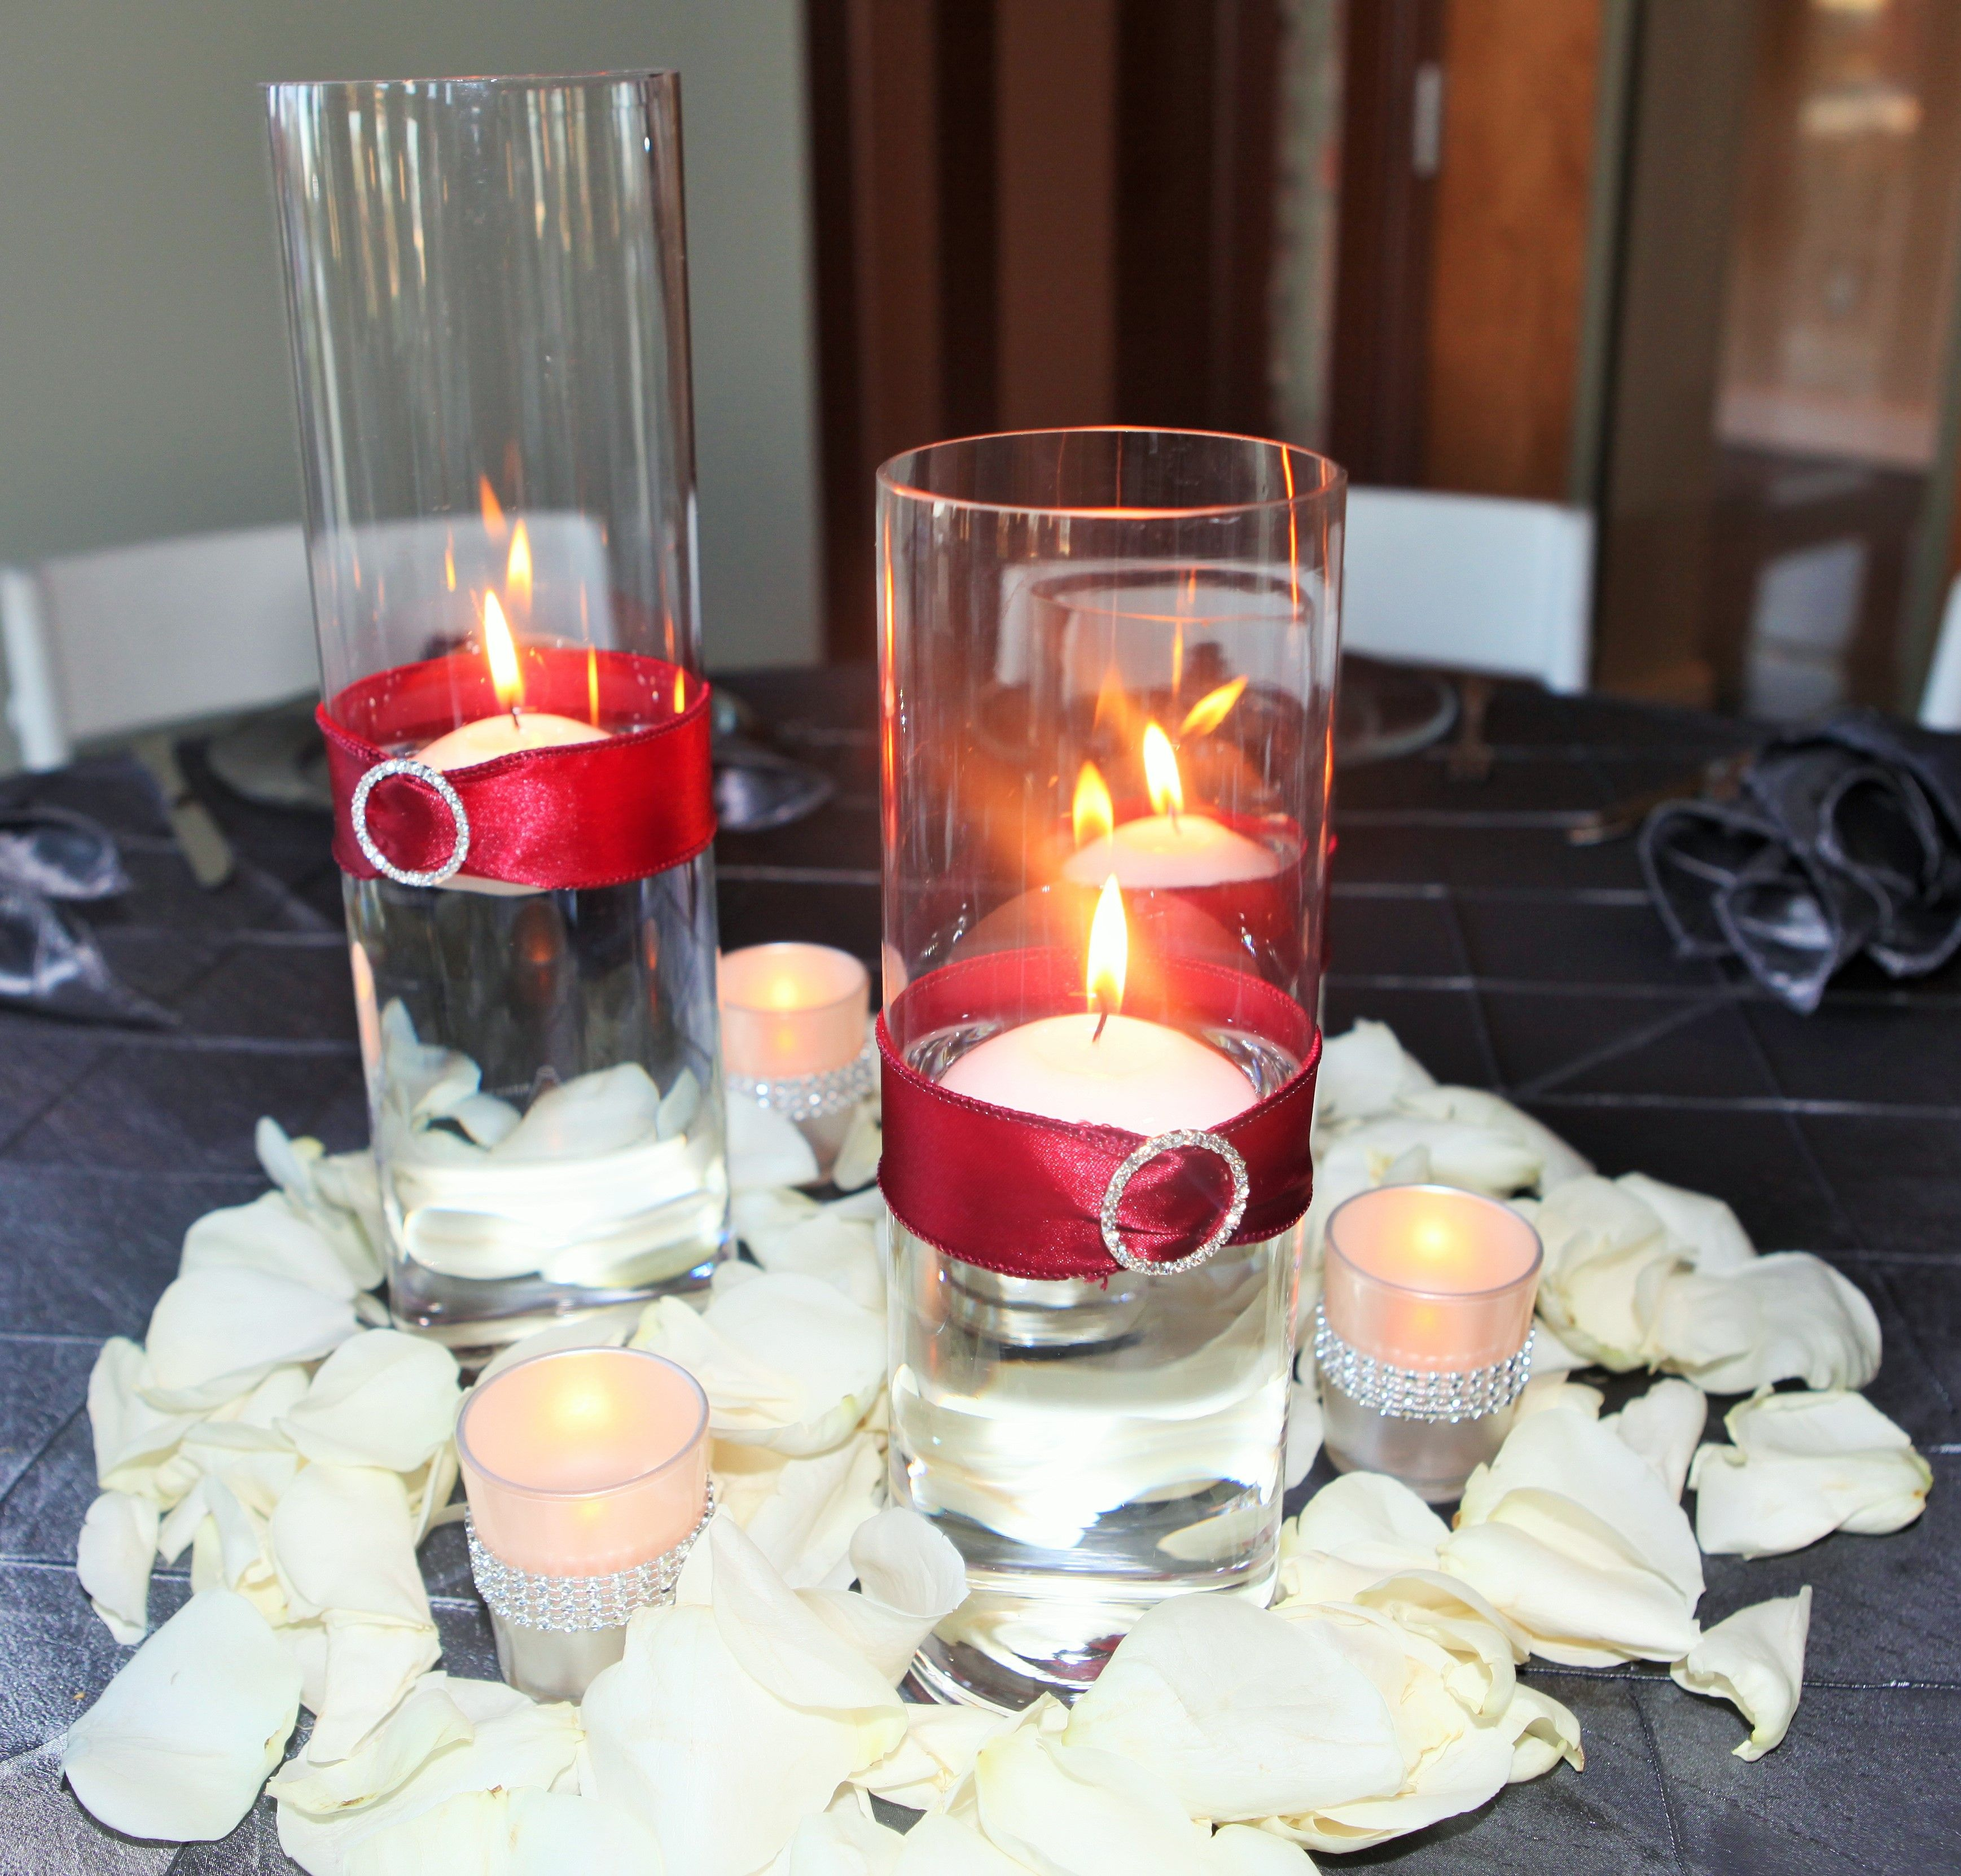 Floating Petals Centerpieces: 3 Glass Cylinder Wedding Centerpieces With Floating